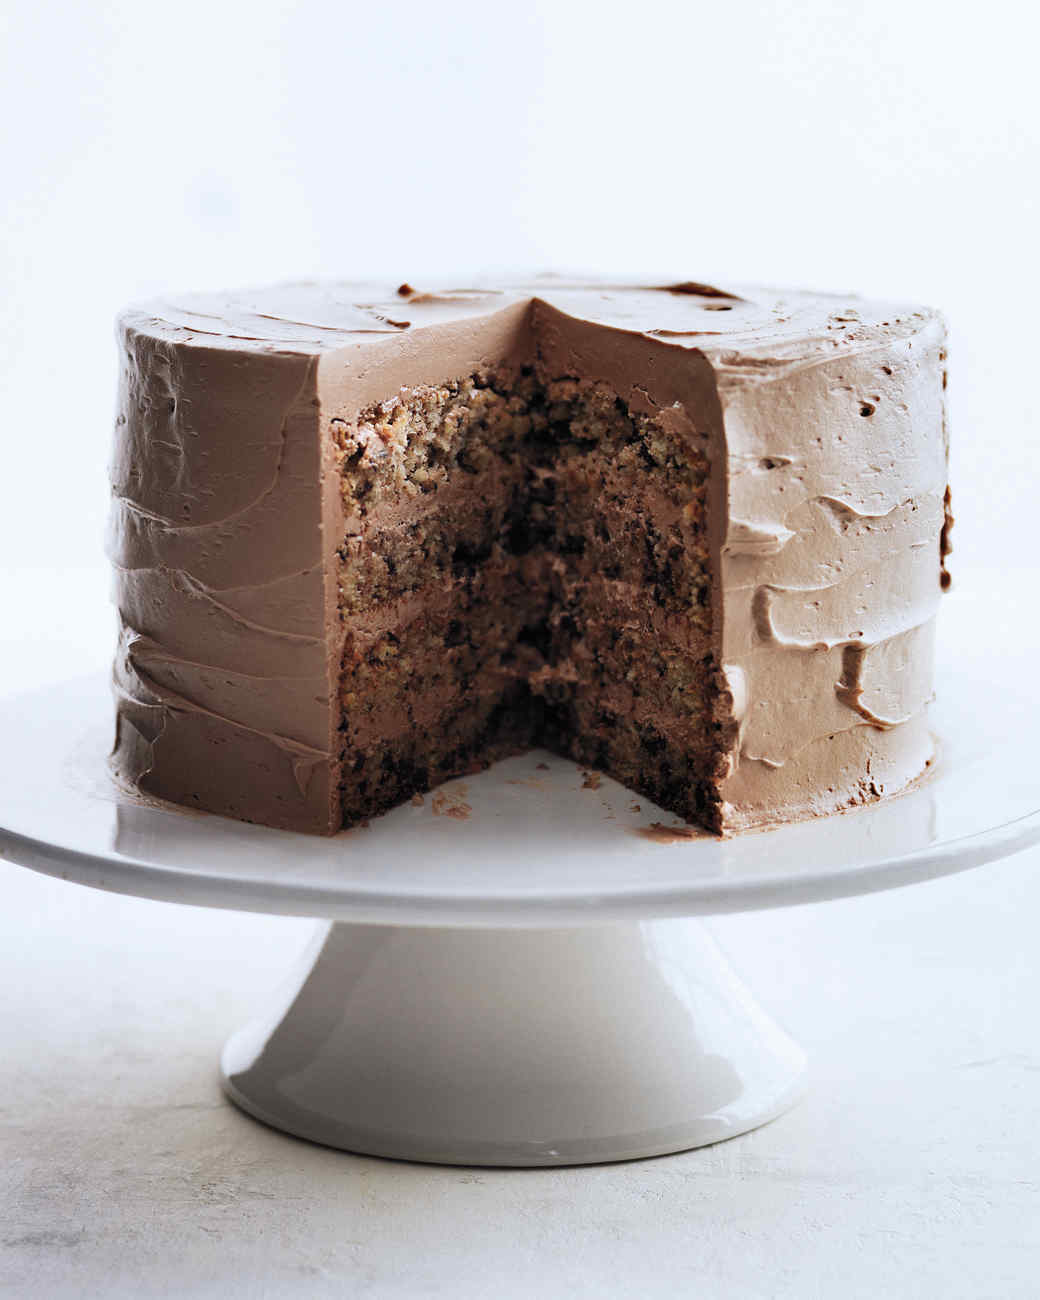 Chocolate Layer Cake With Milk Chocolate Frosting Recipes ...